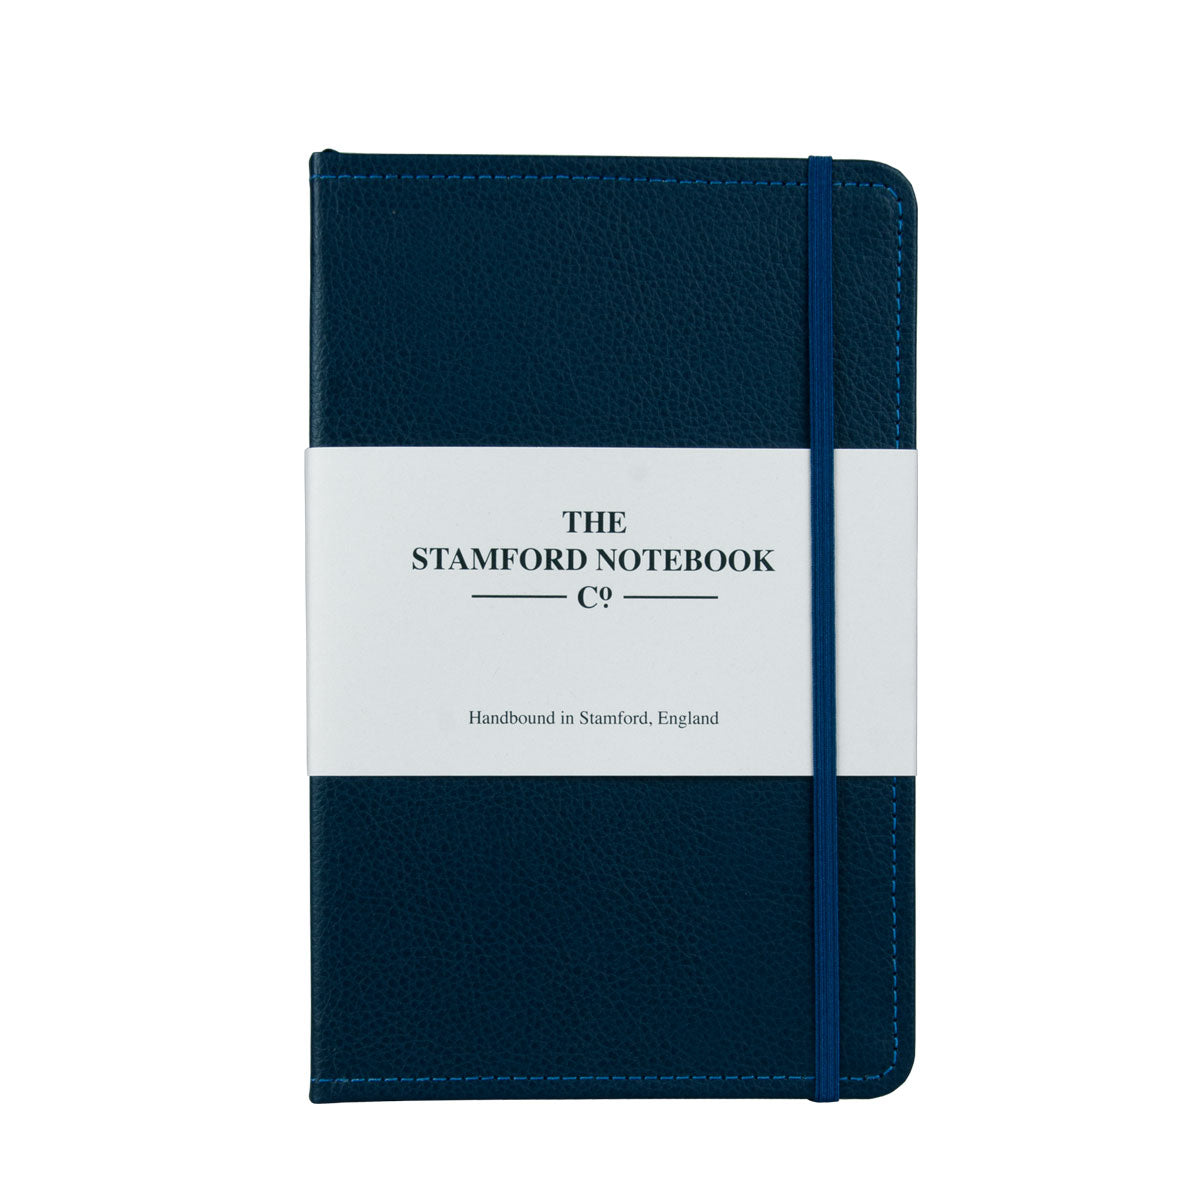 Marine Blue leather notebook with navy stitching